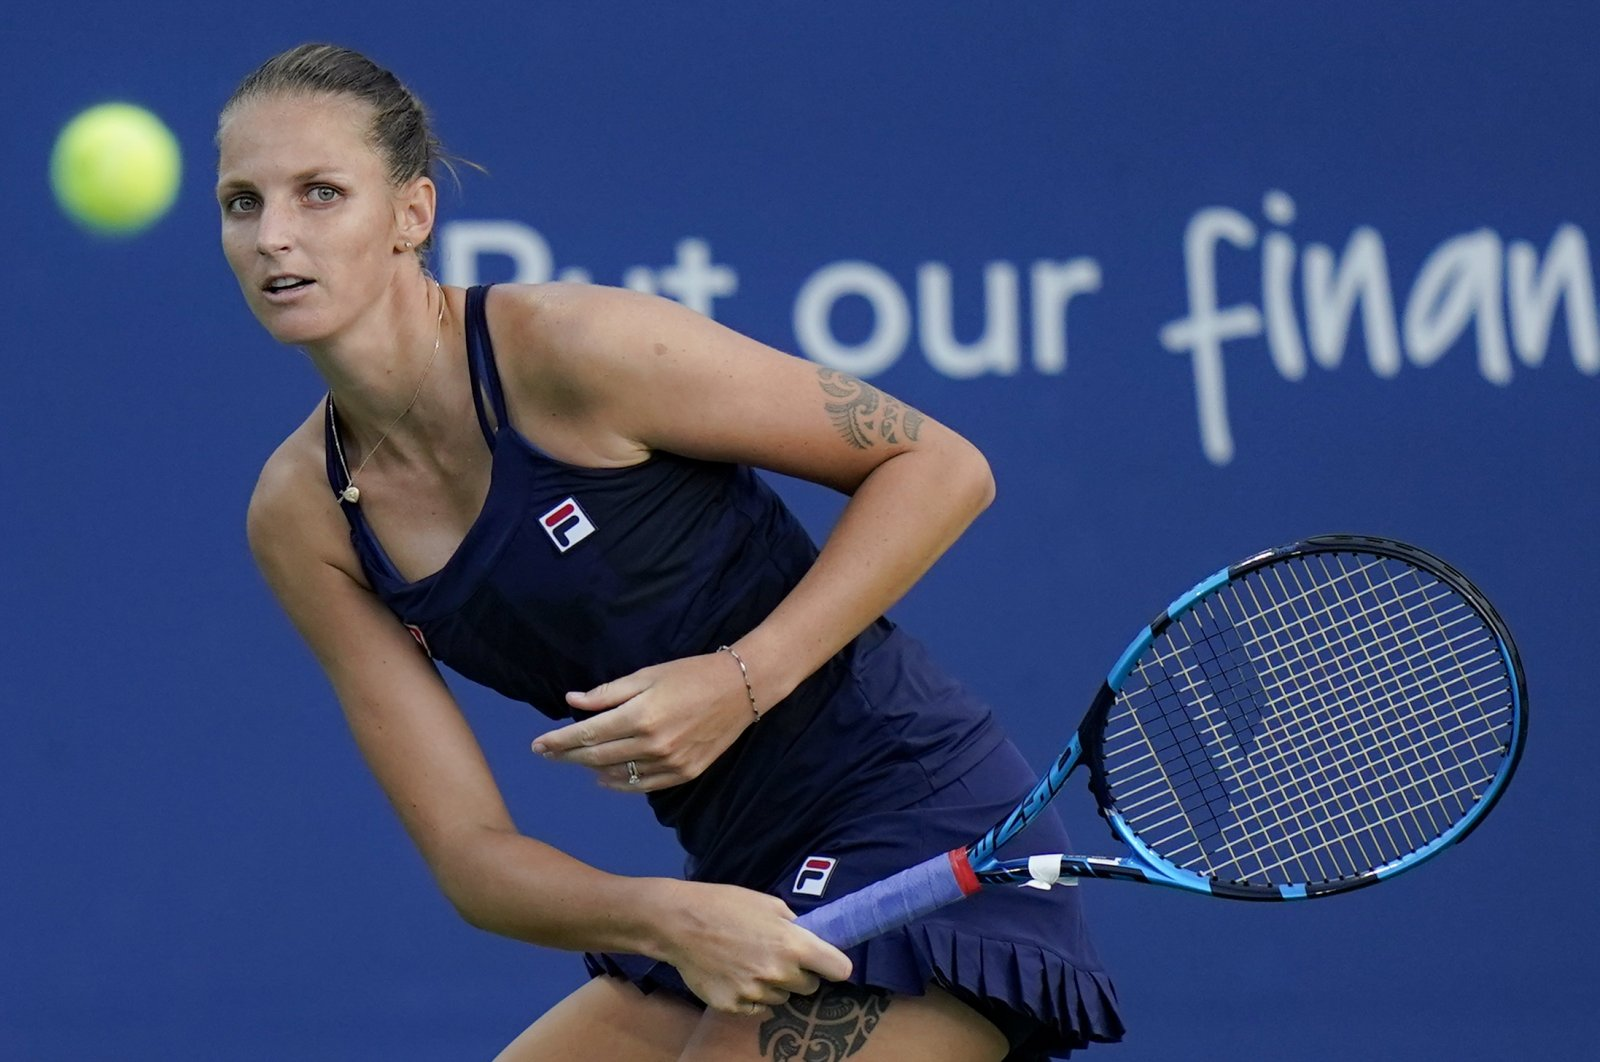 Karolina Pliskova during the Western & Southern Open tournament in New York, U.S., Aug. 23, 2020. (AP Photo)